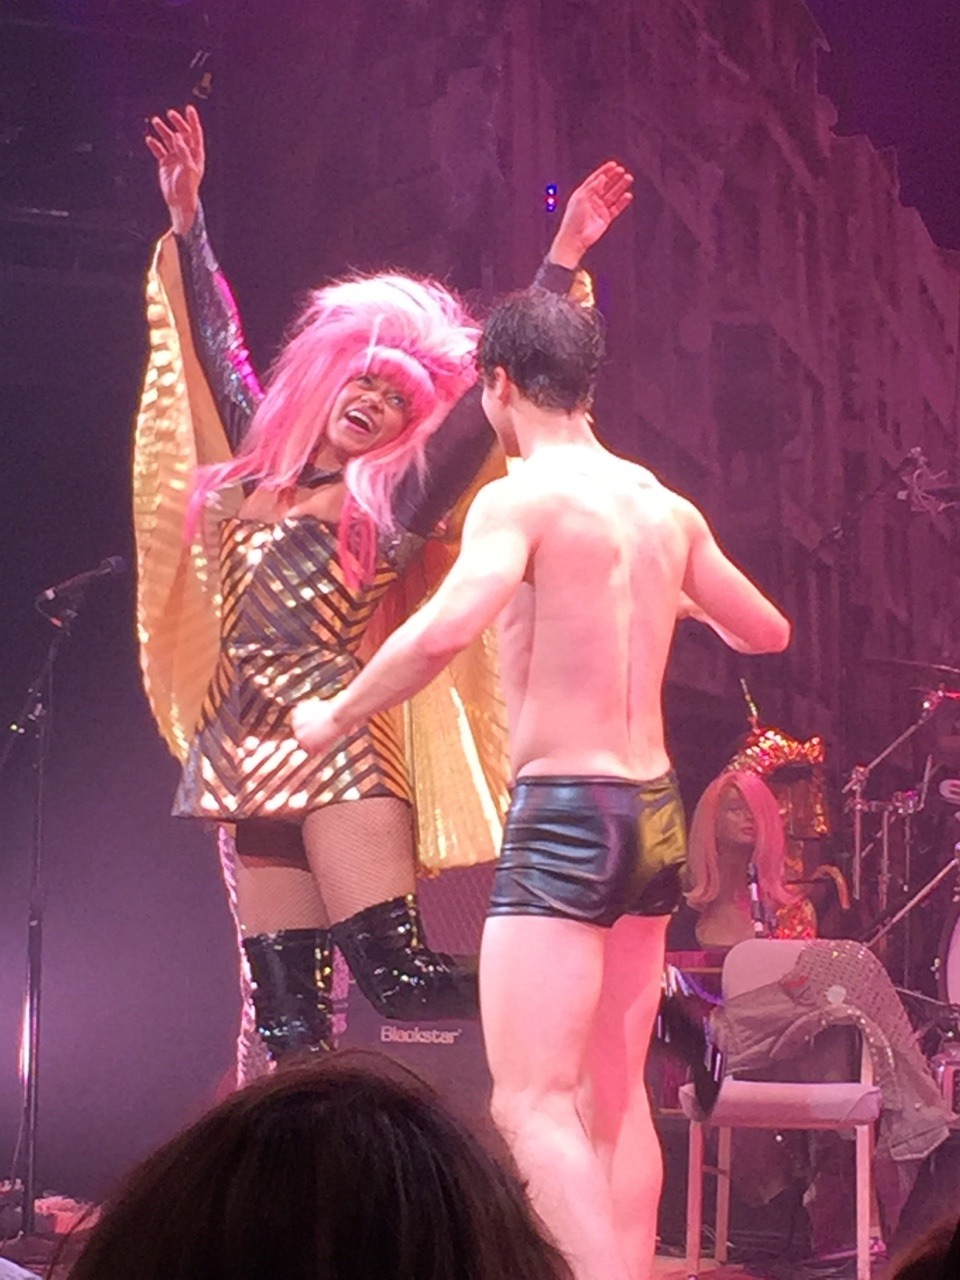 hedwig - Pics and gifs of Darren in Hedwig and the Angry Inch on Broadway. Tumblr_nq6b14Y2Qk1qdtnwjo9_1280